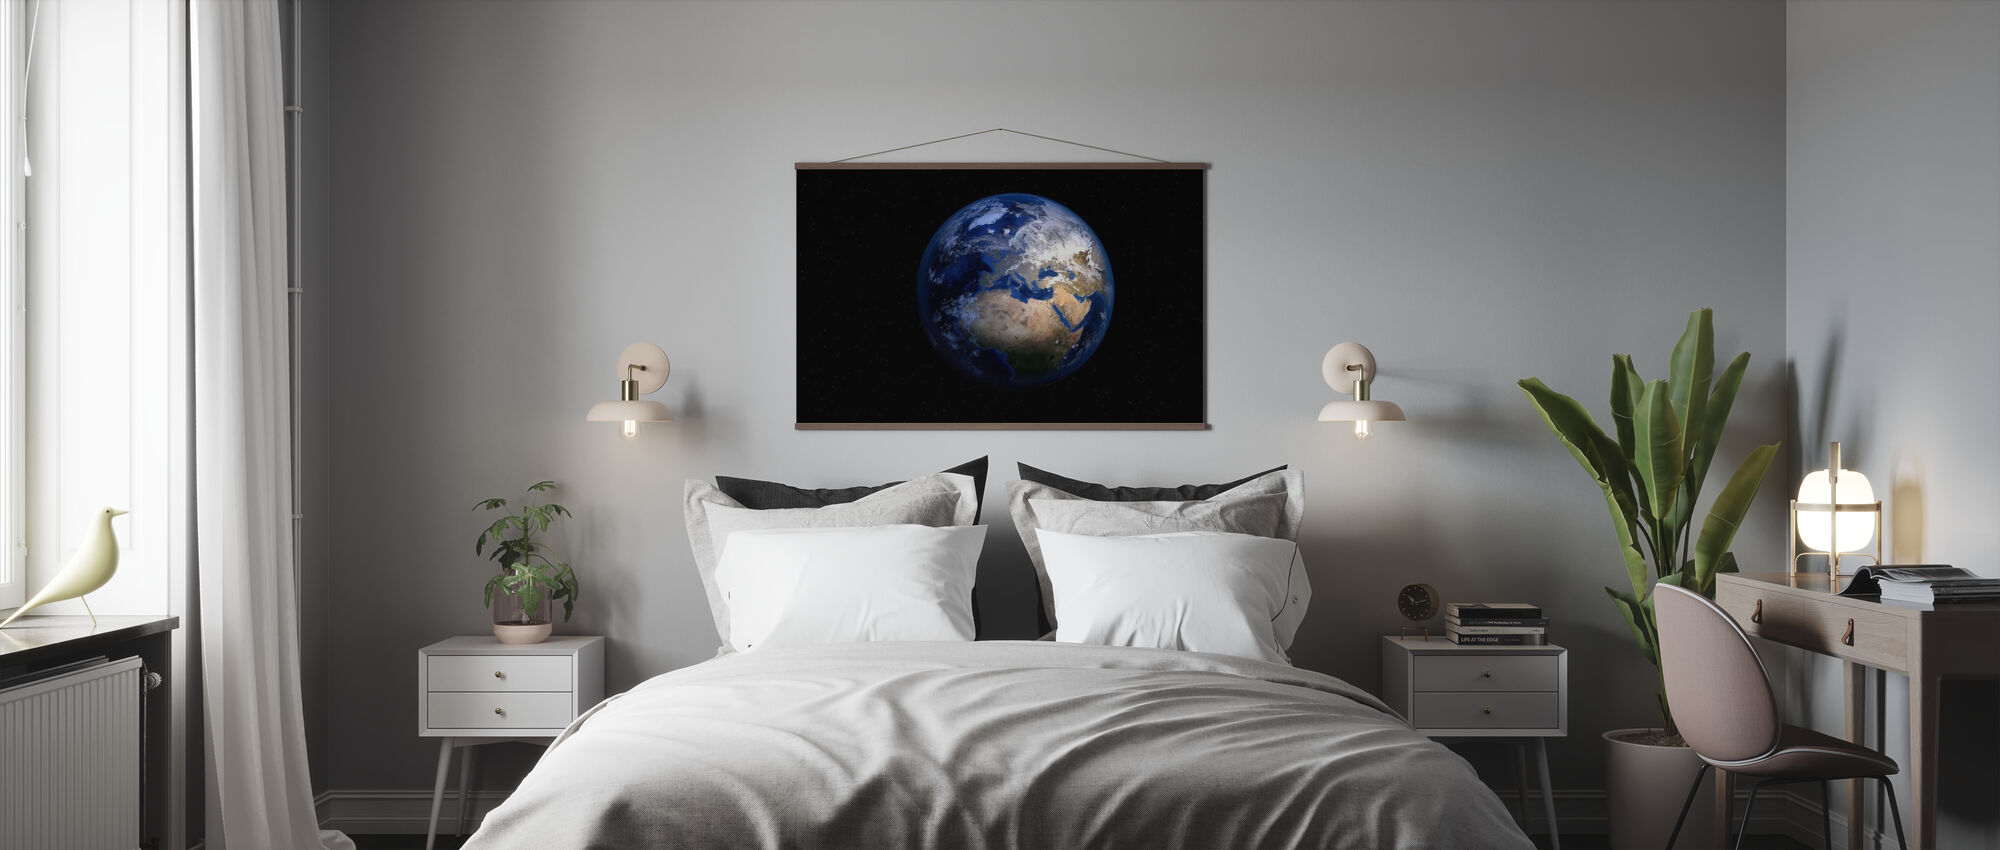 Planet Earth - Poster - Bedroom